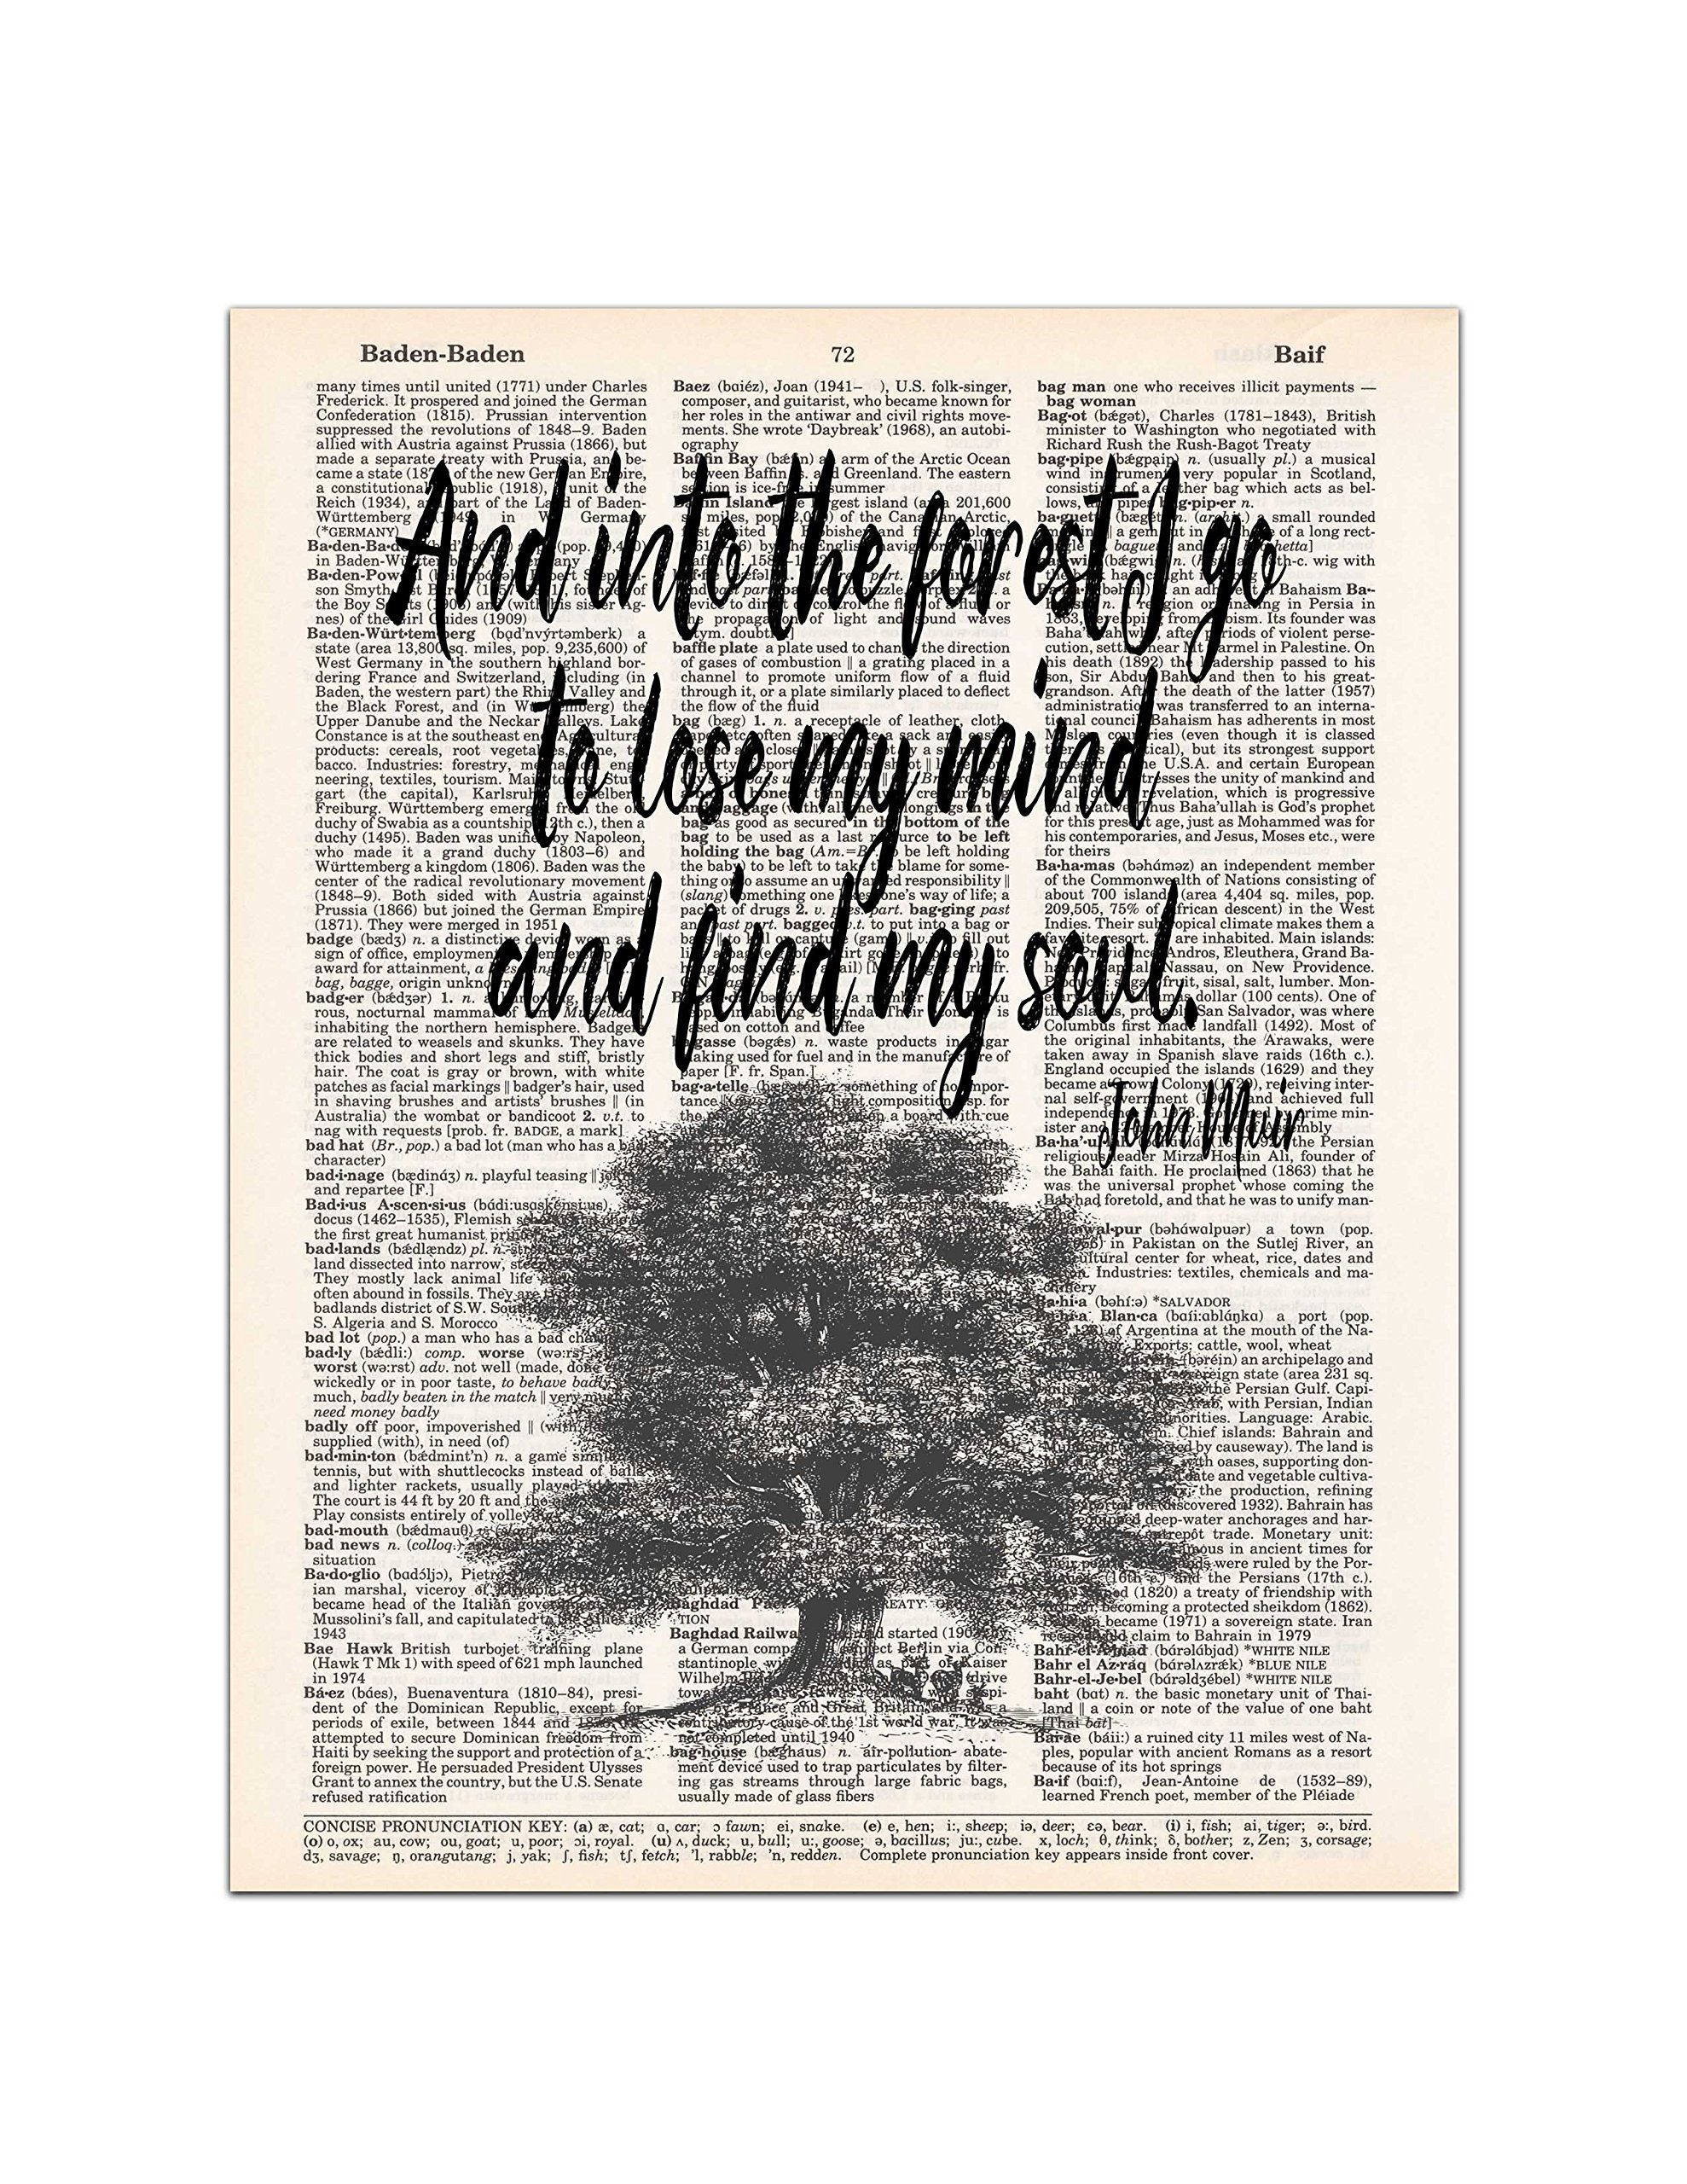 Into the Forest, John Muir Nature Quote, Dictionary Page Art Print, 8x11 UNFRAMED by Waterstone Creations